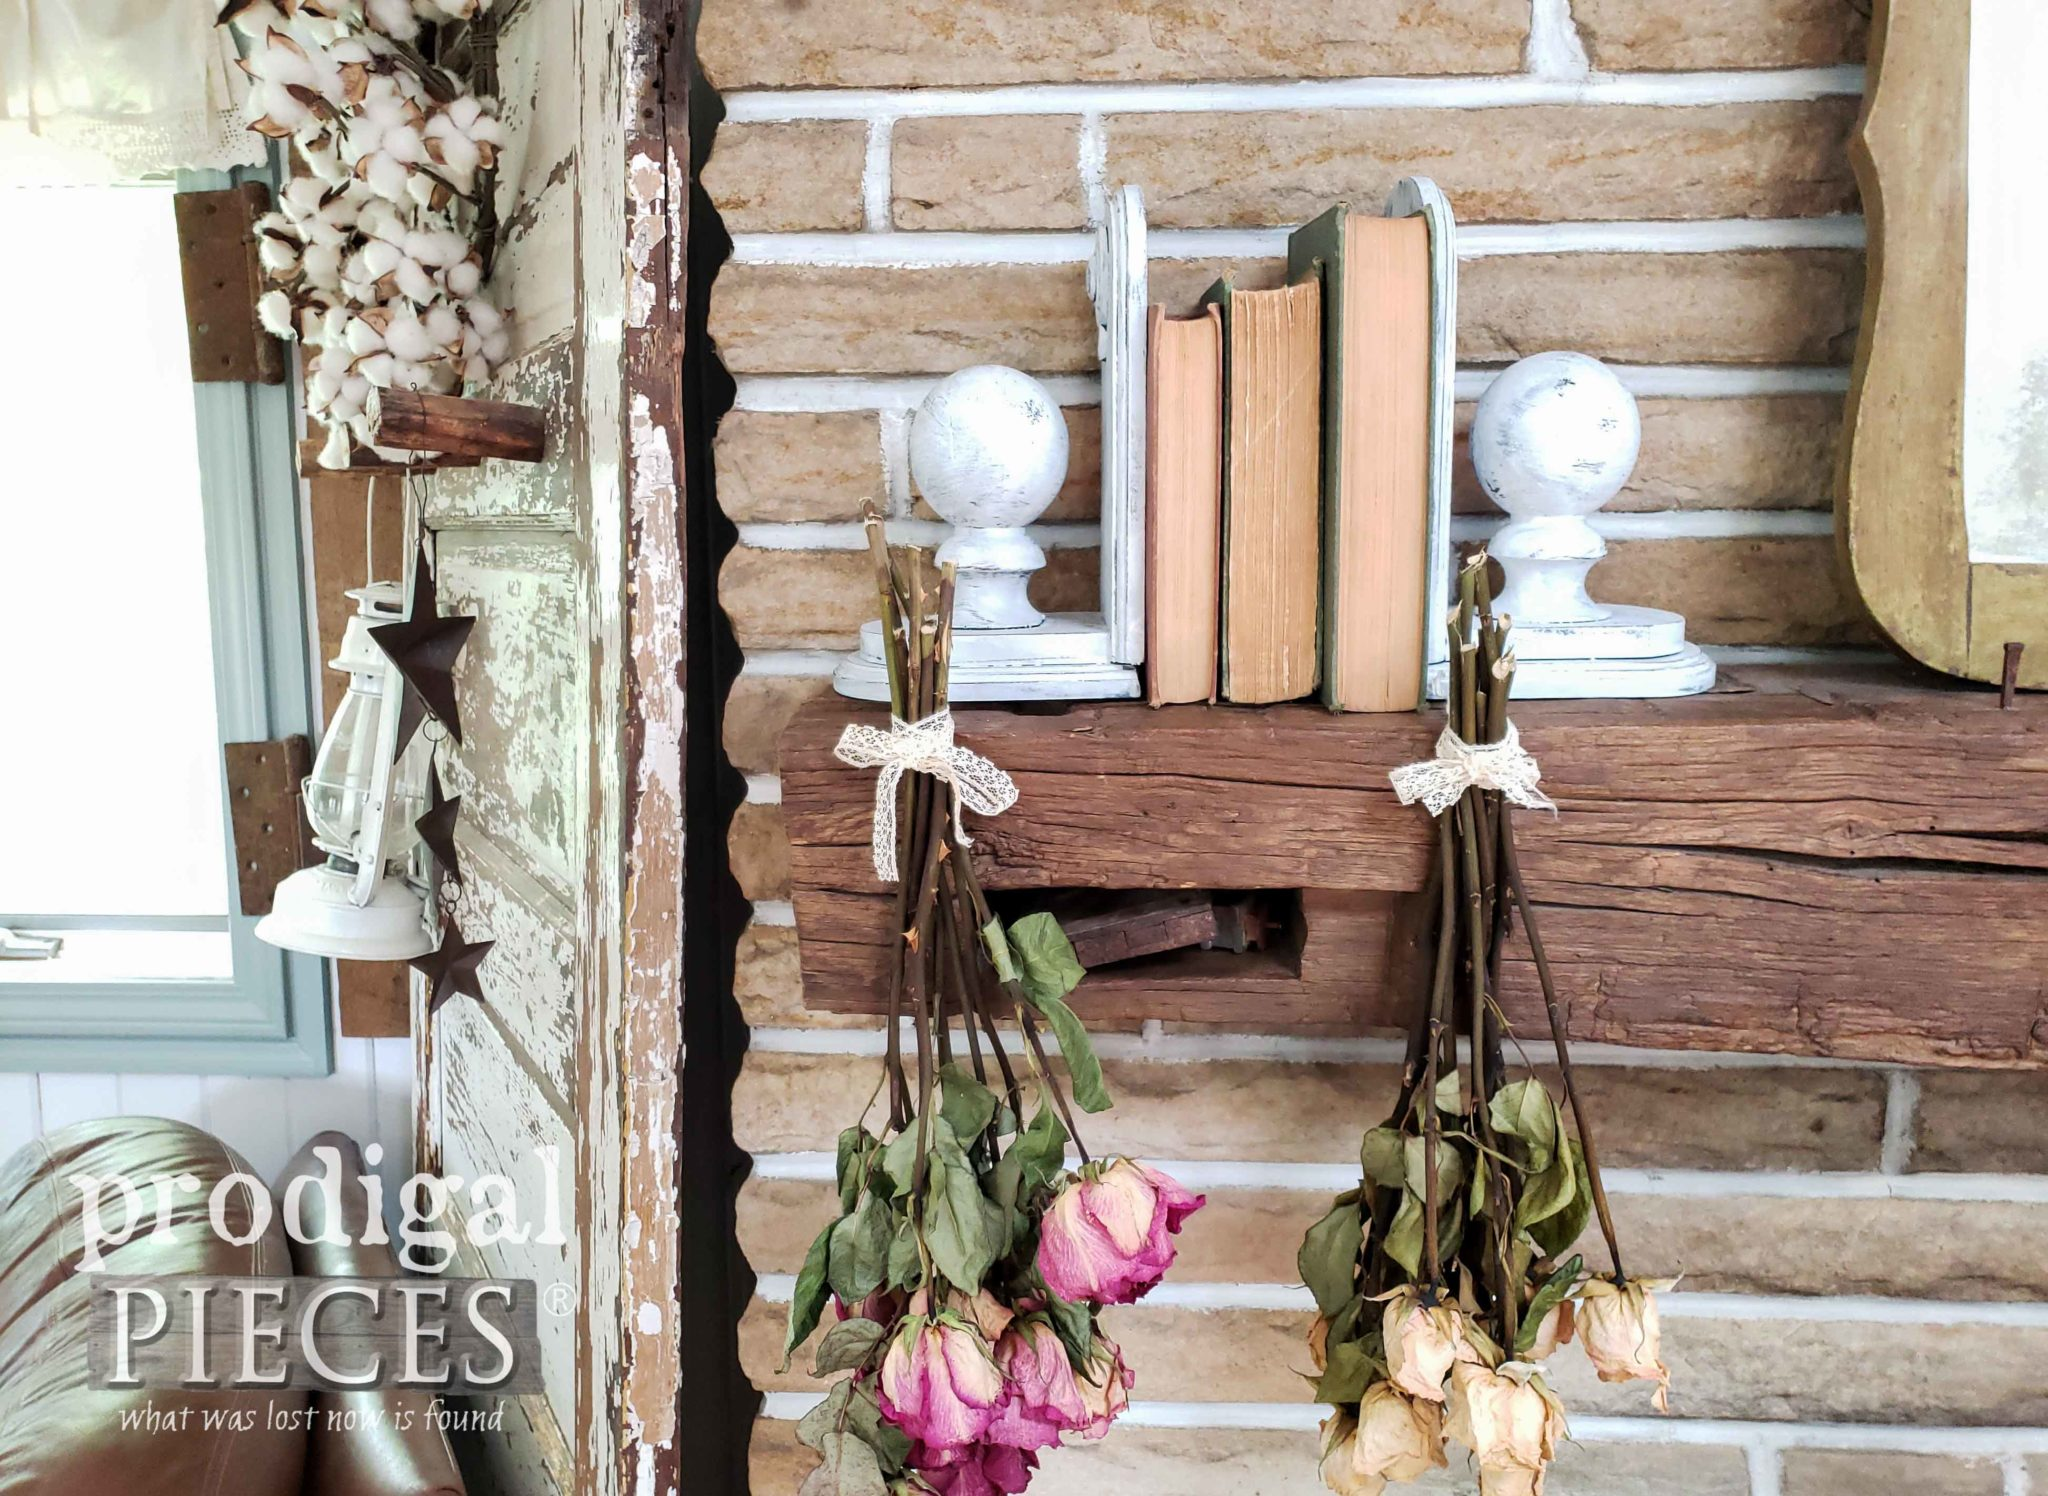 Farmhouse Style Architectural Salvage Bookends Created by Larissa of Prodigal Pieces | prodigalpieces.com #prodigalpieces #diy #home #homedecor #handmade #farmhouse